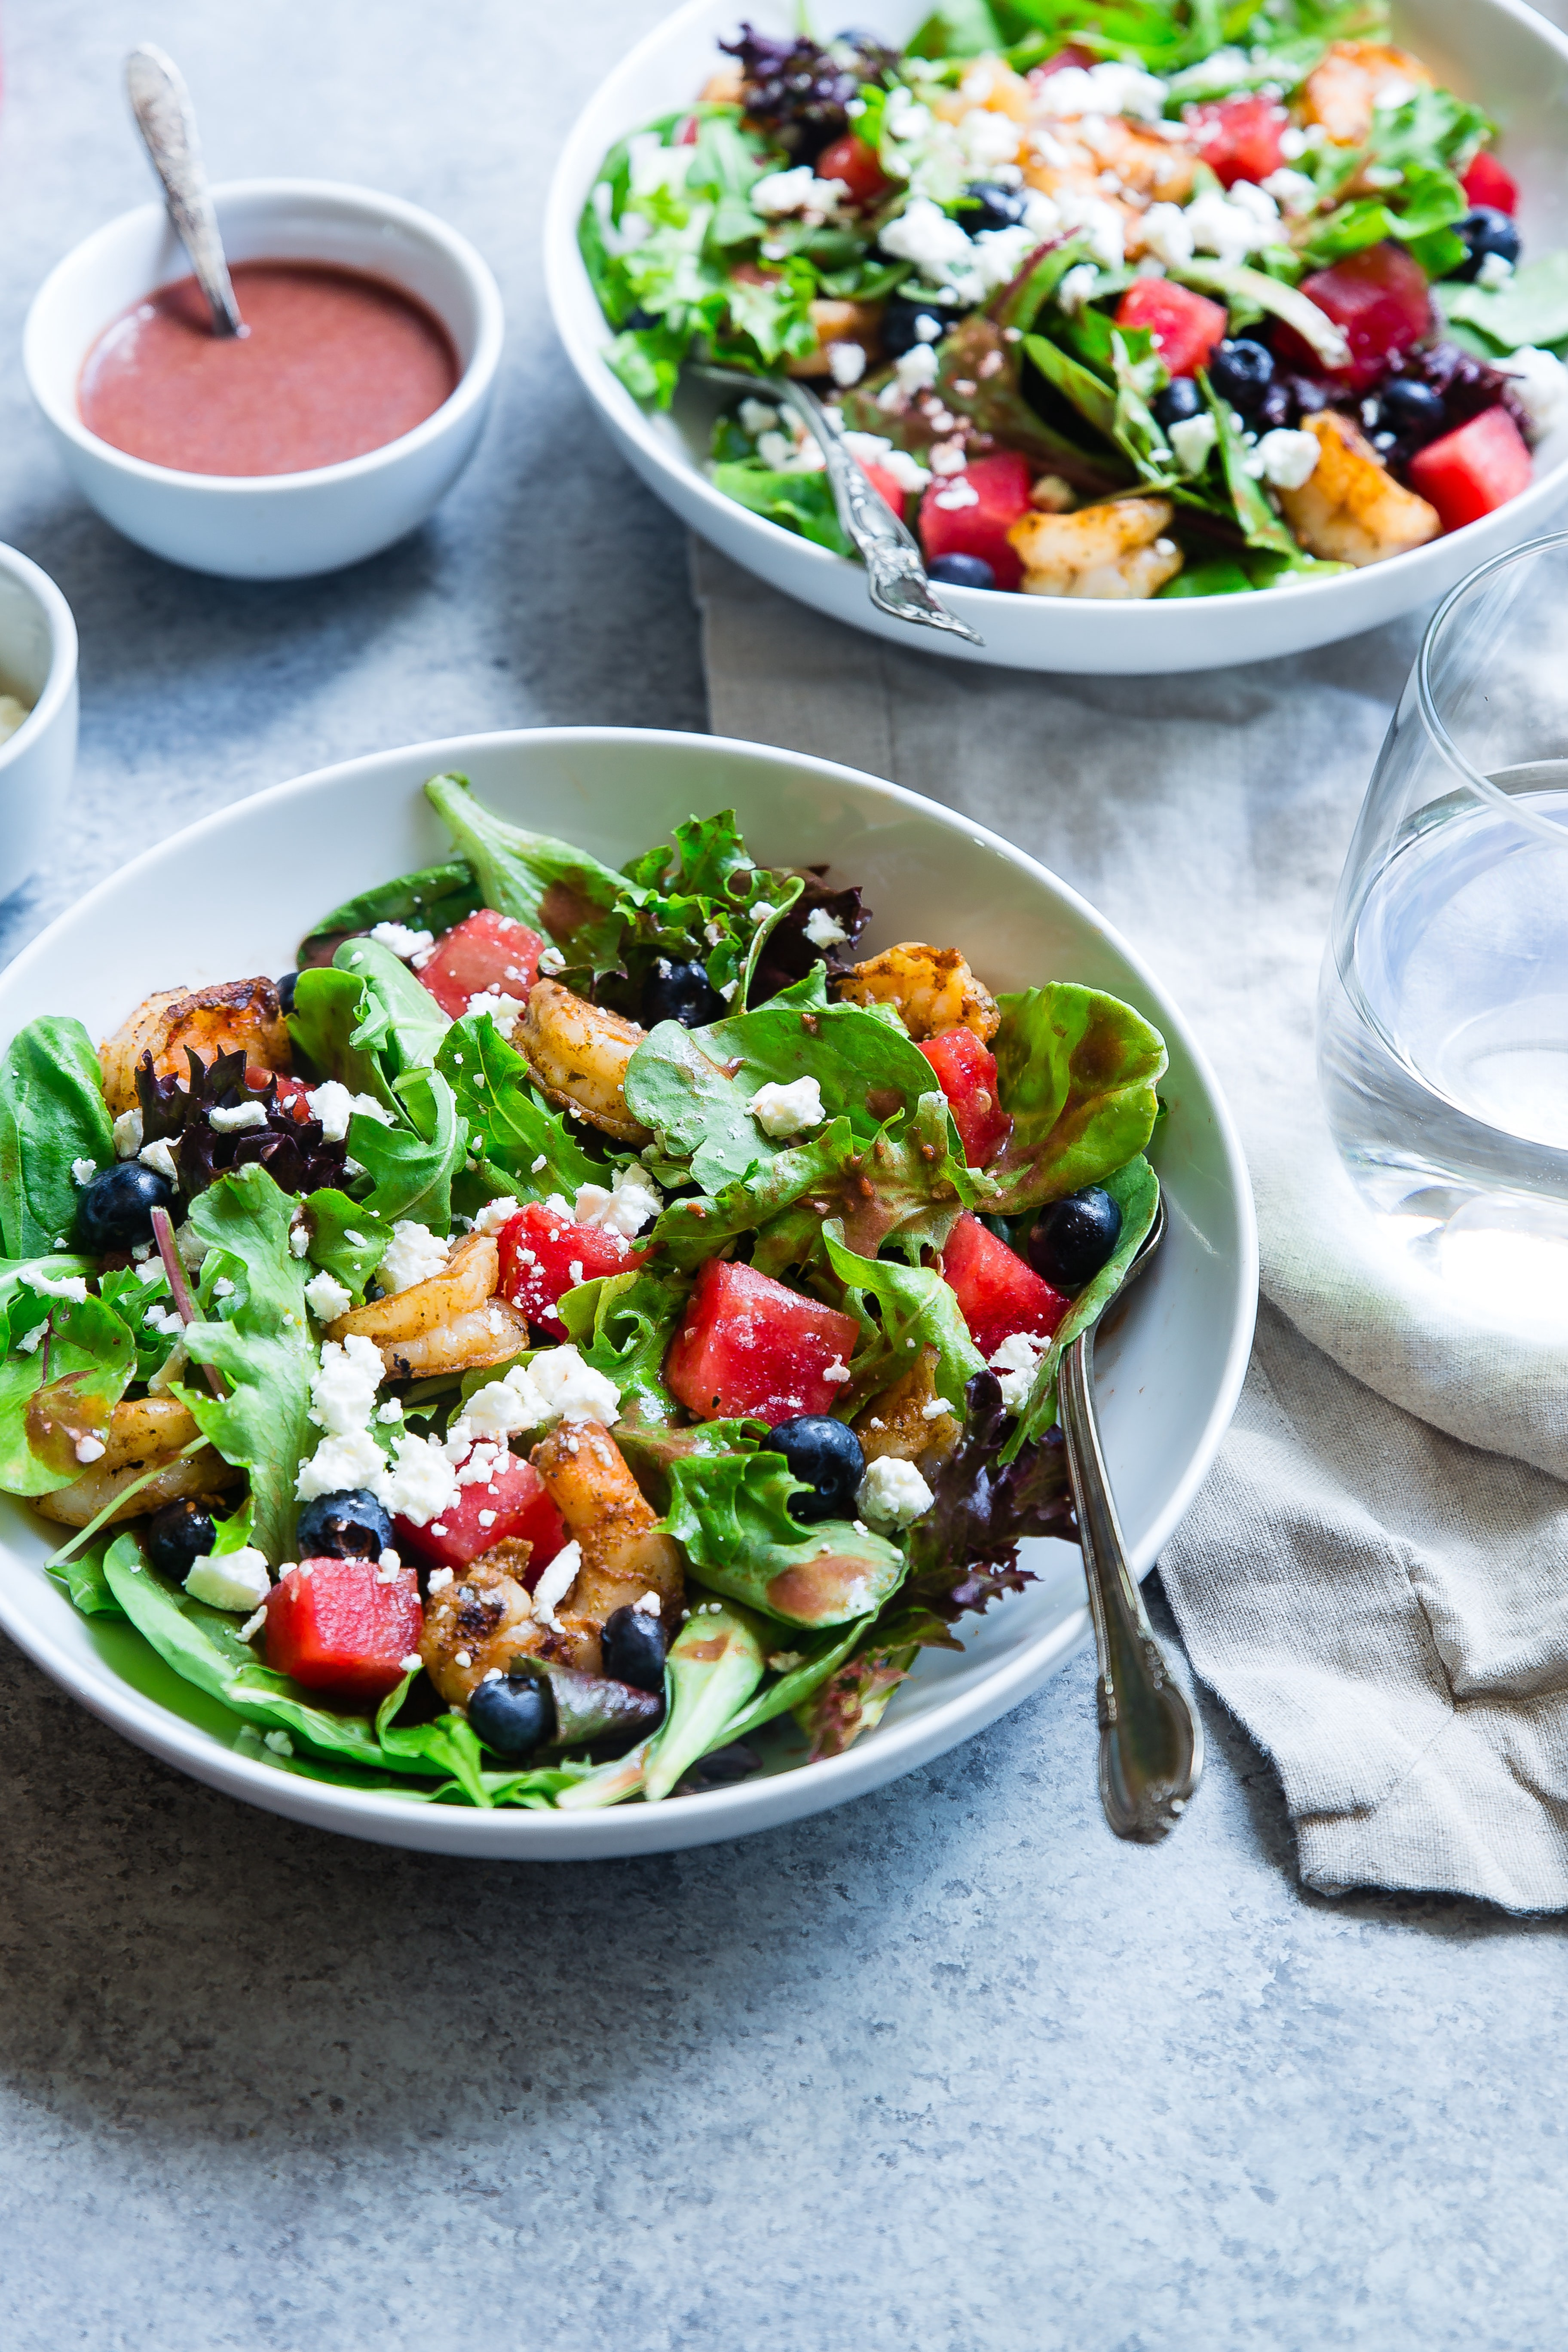 Picture of two bowls of colorful salads.